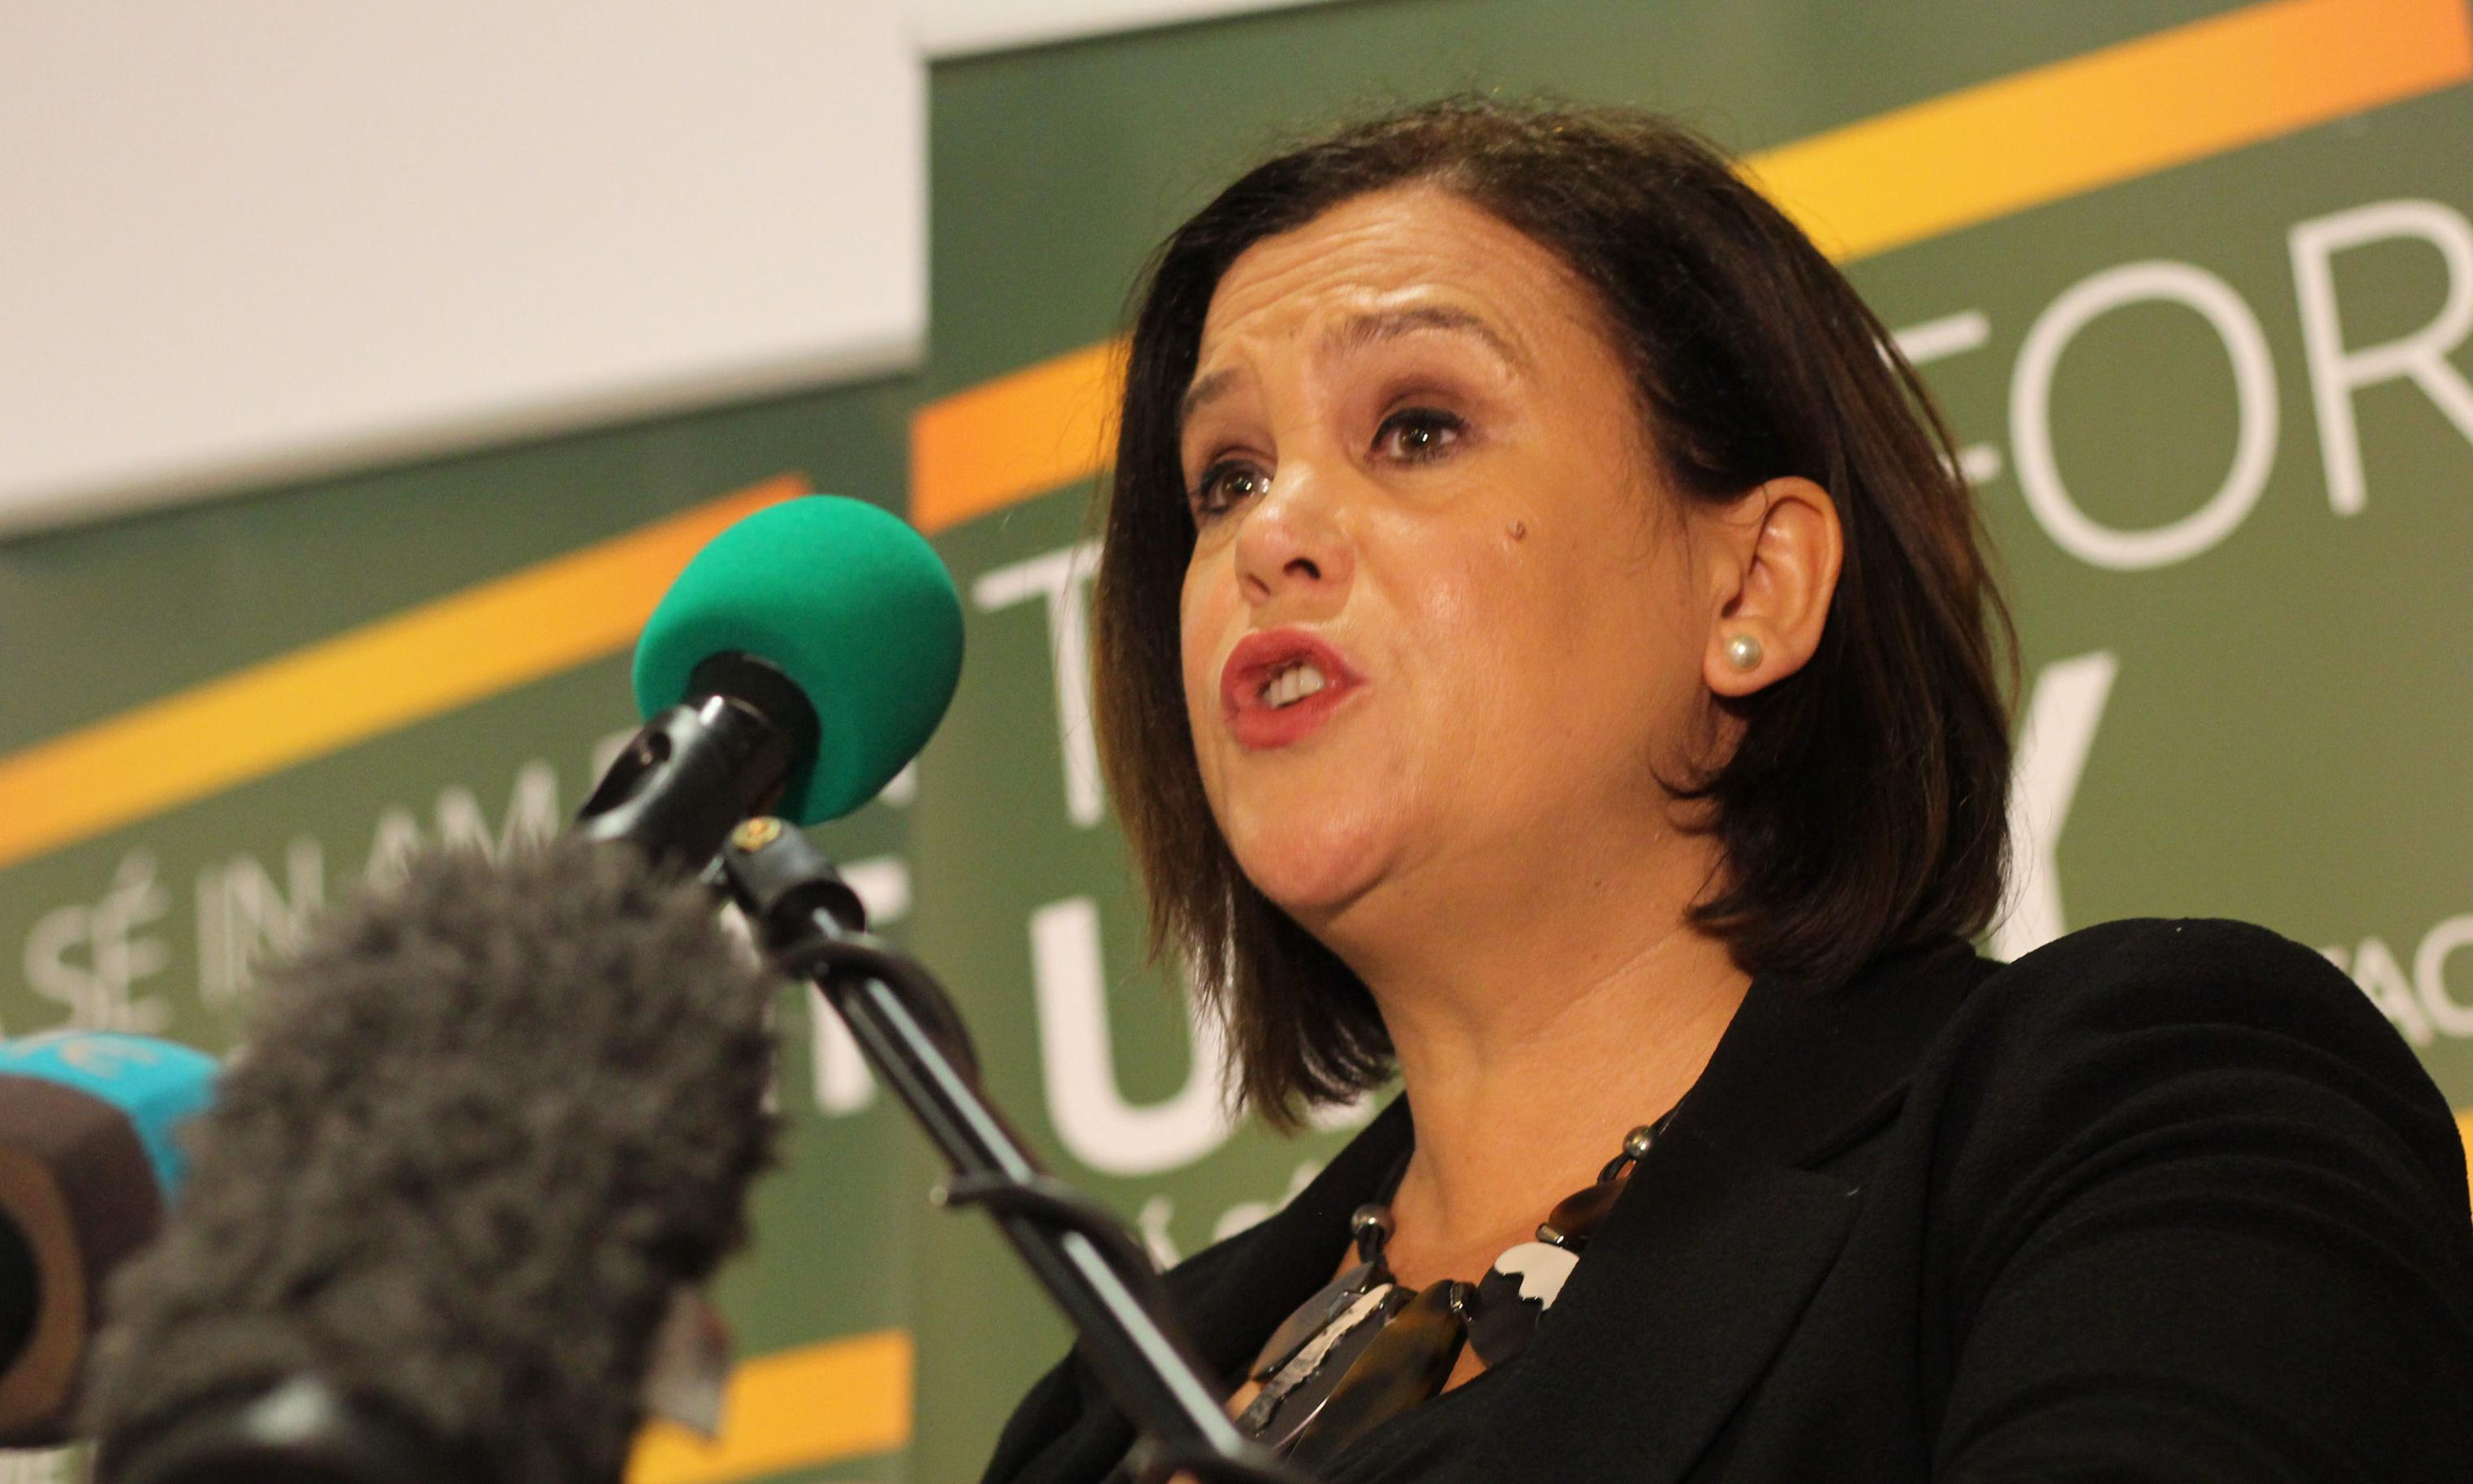 Mary-Lou McDonald: violent dissident republicans should disband